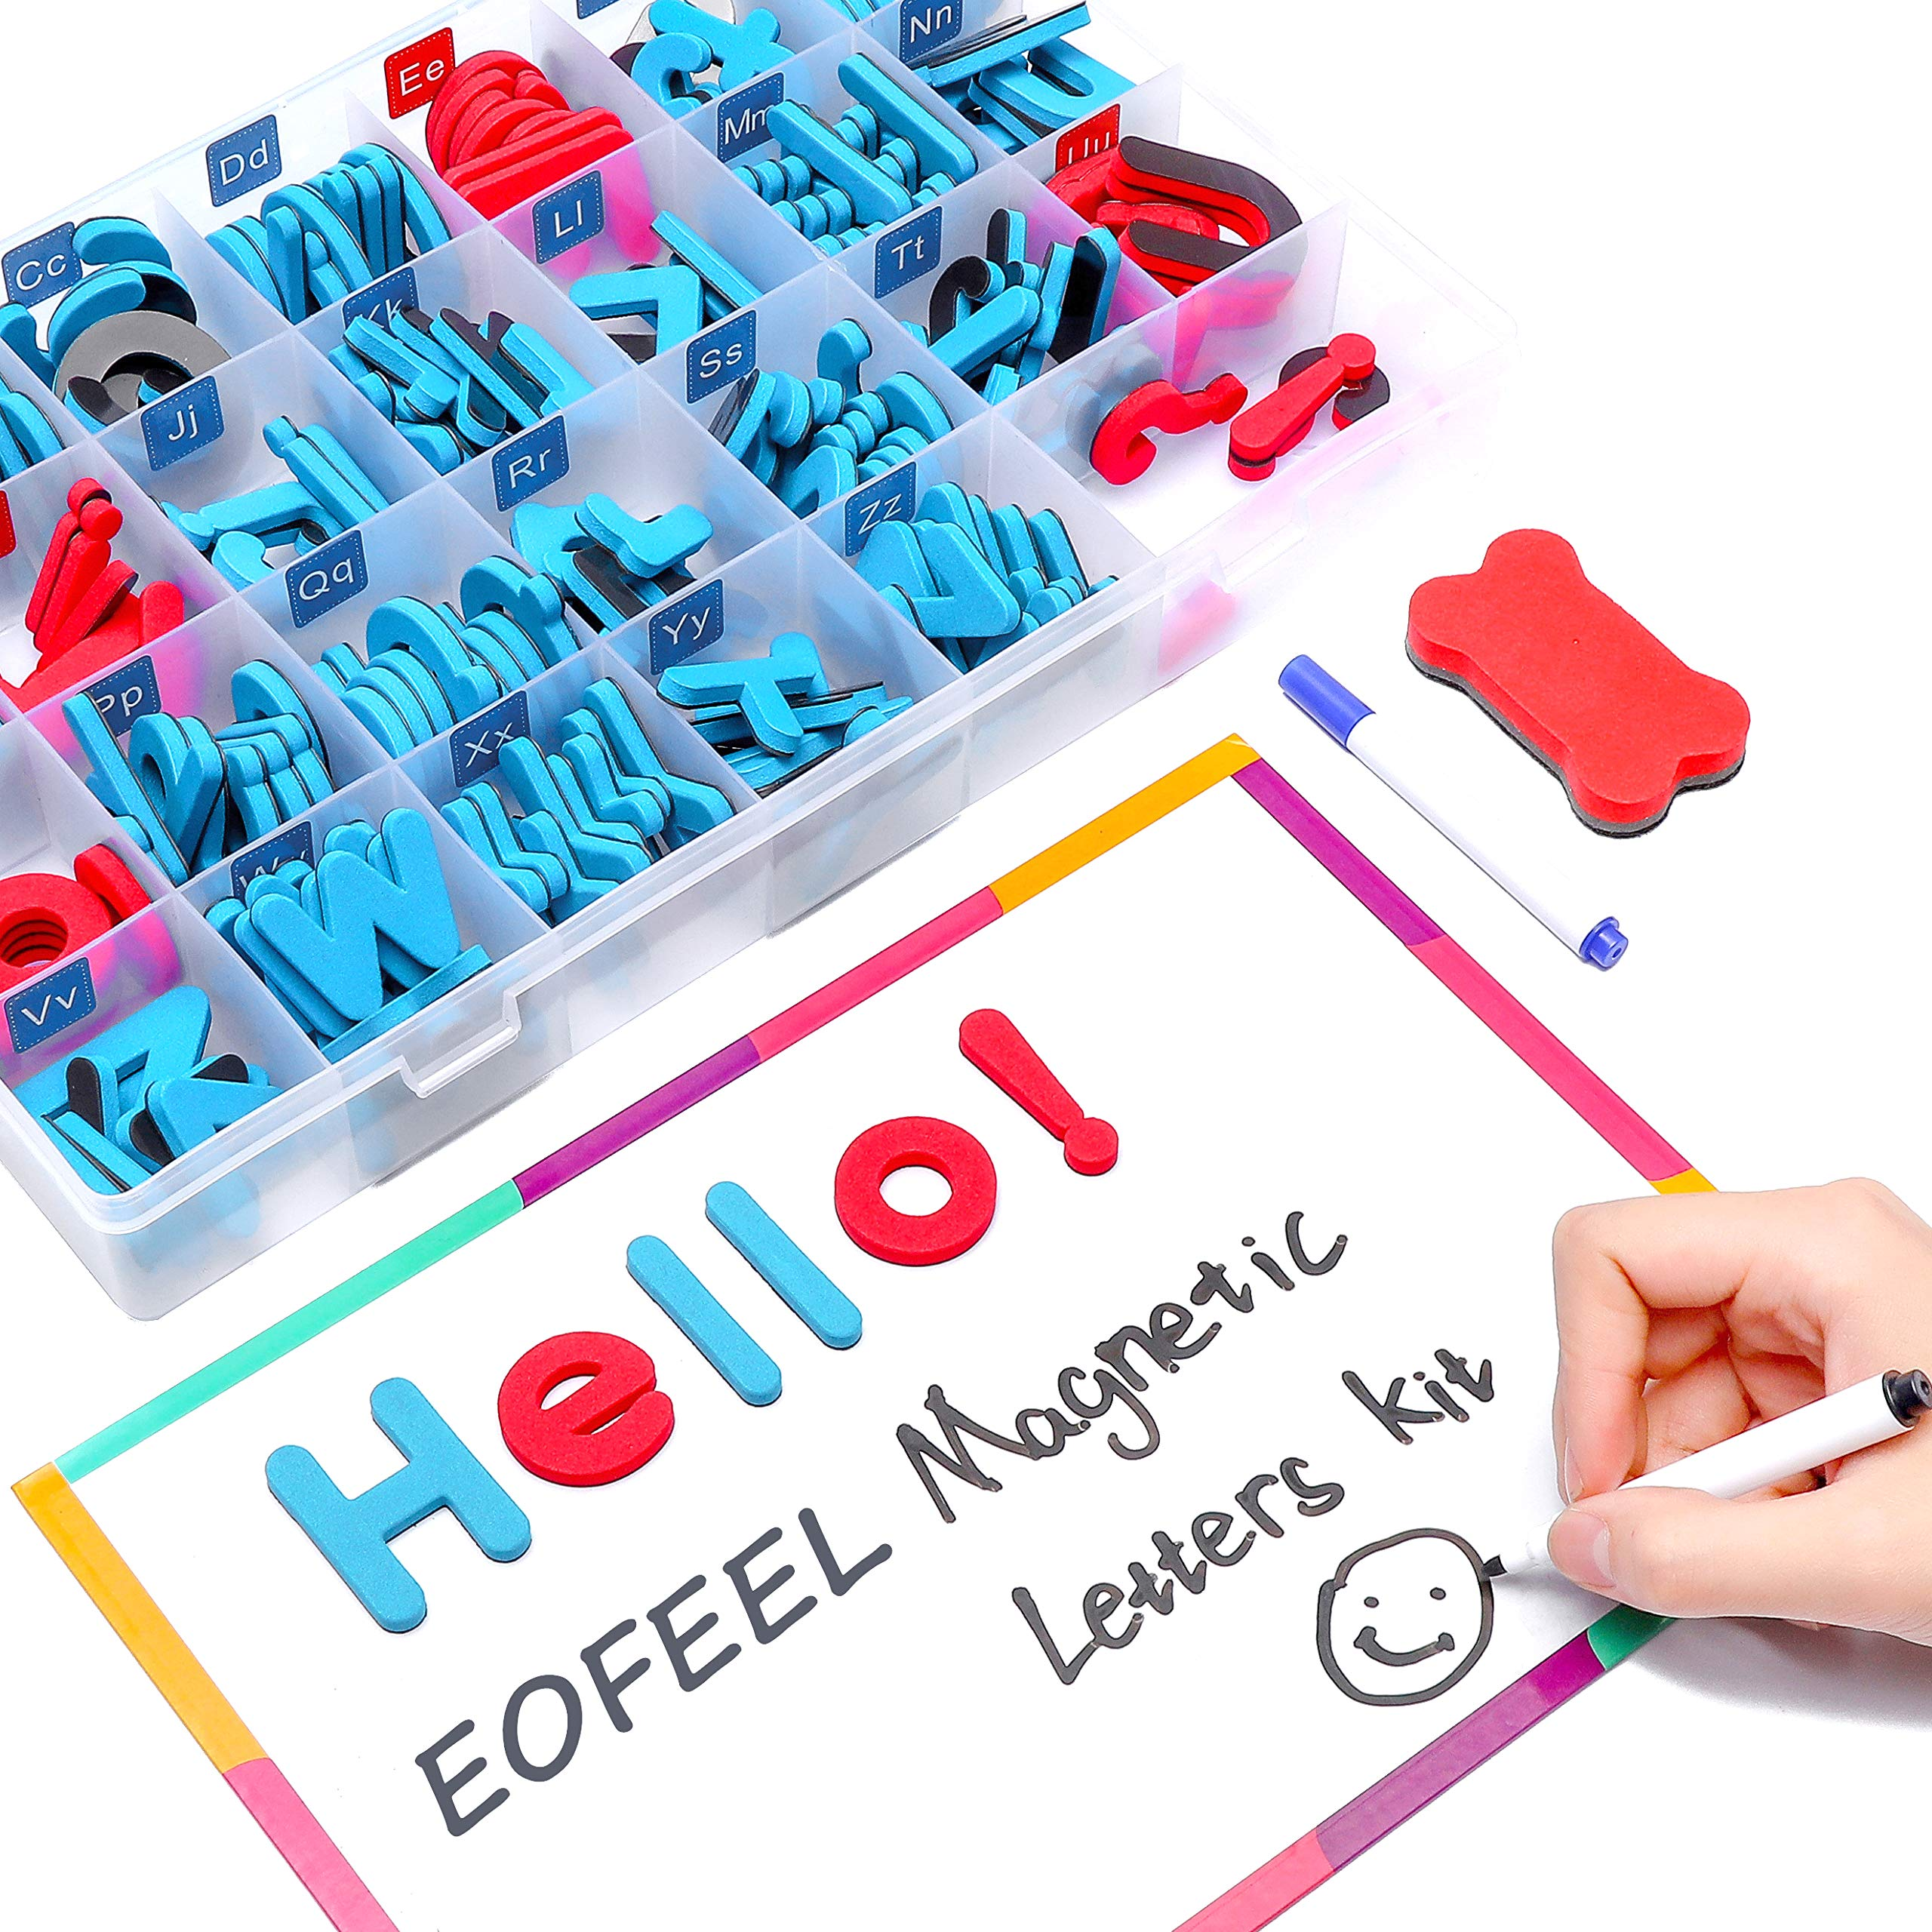 EOFEEL Magnetic Letters kit Double -Side Dry Erase Magnetic Board - Educational Vocabulary Alphabet Refrigerator Magnets for Kids Gift Set(208pcs,Red & Blue)